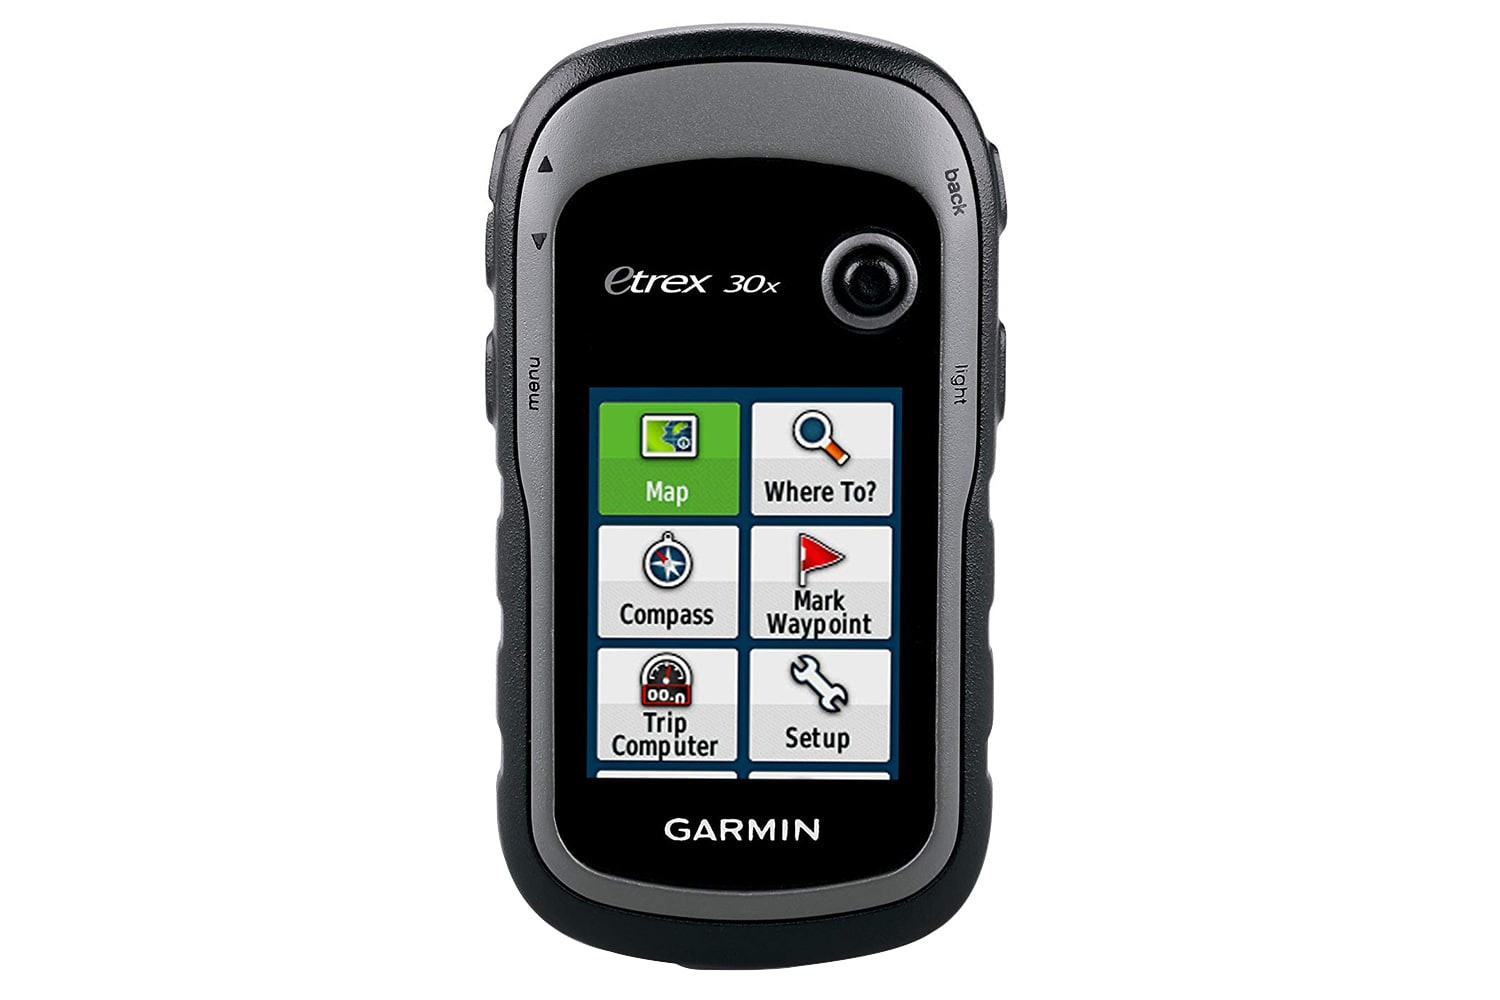 Garmin eTrex 30x GPS | Western Europe Maps